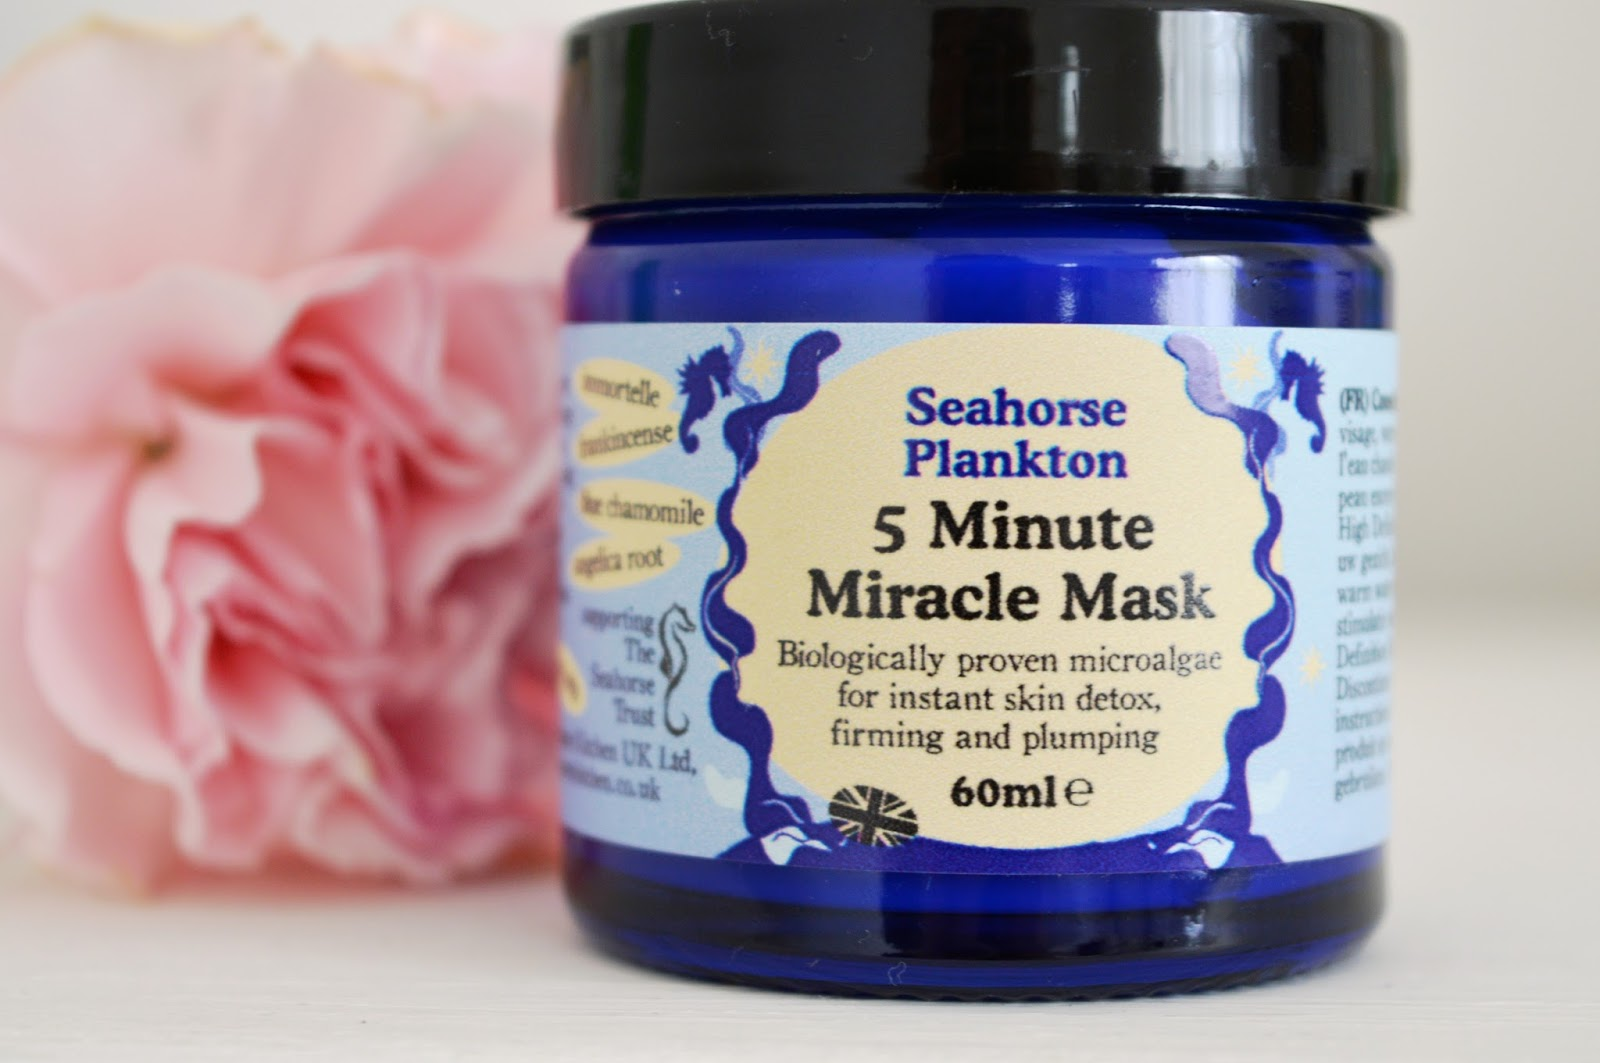 Beauty Kitchen Seahorse Plankton 5 Minute Miracle Mask review, UK beauty blog